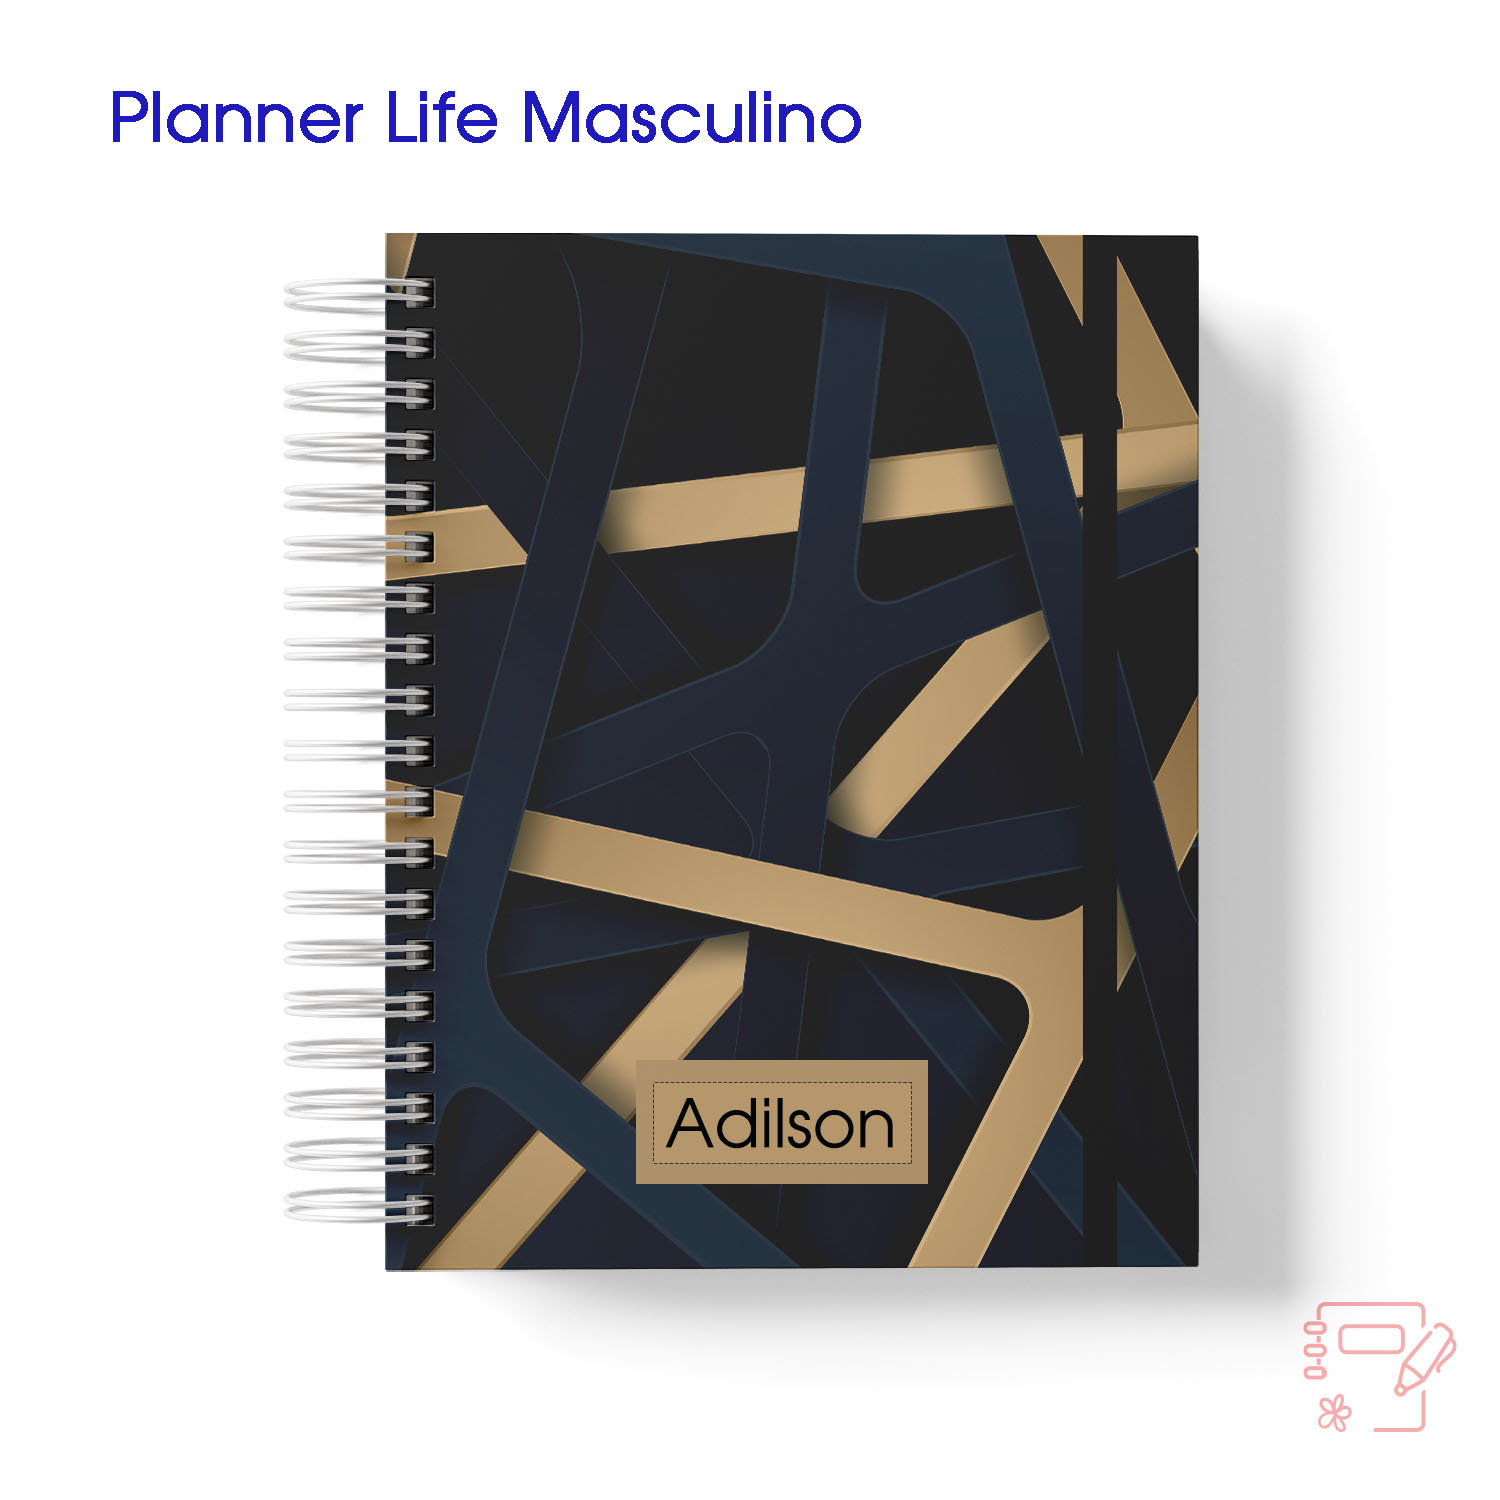 Planner Life Masculino